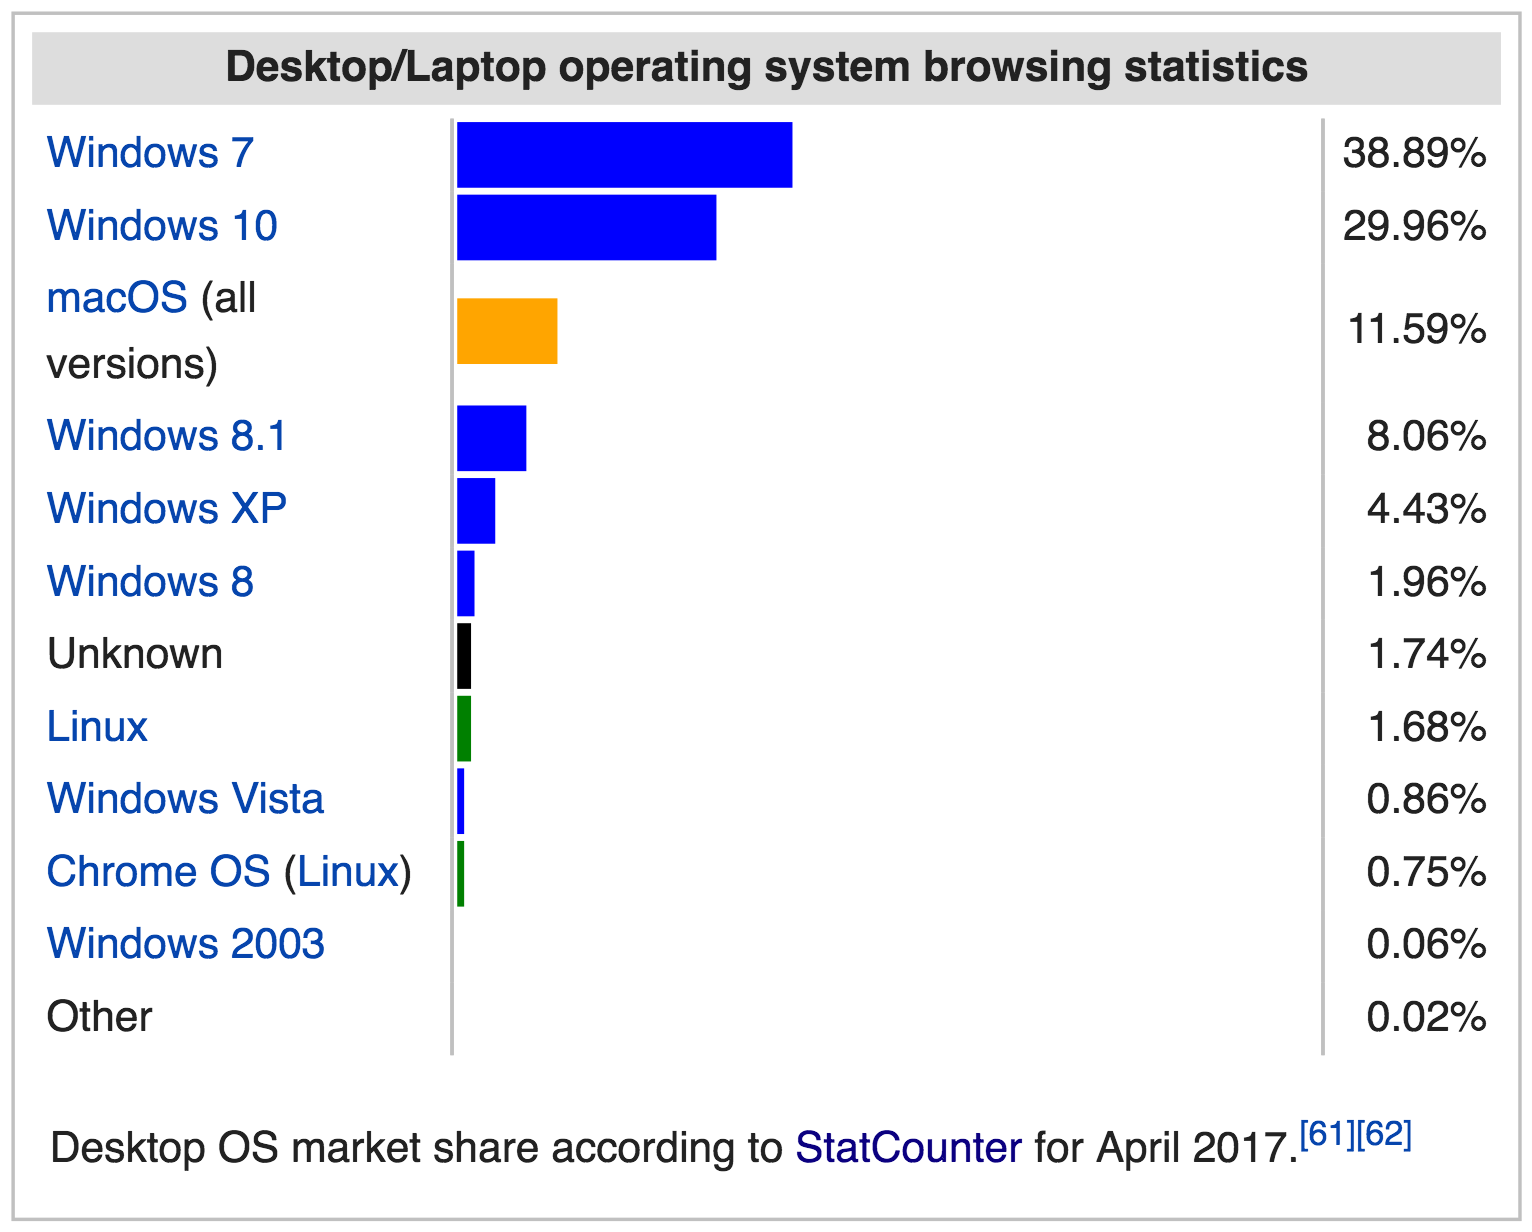 Web clients' OS family market share according to StatCounter for April 2017, as assessed by user agent information supplied by clients to web servers.